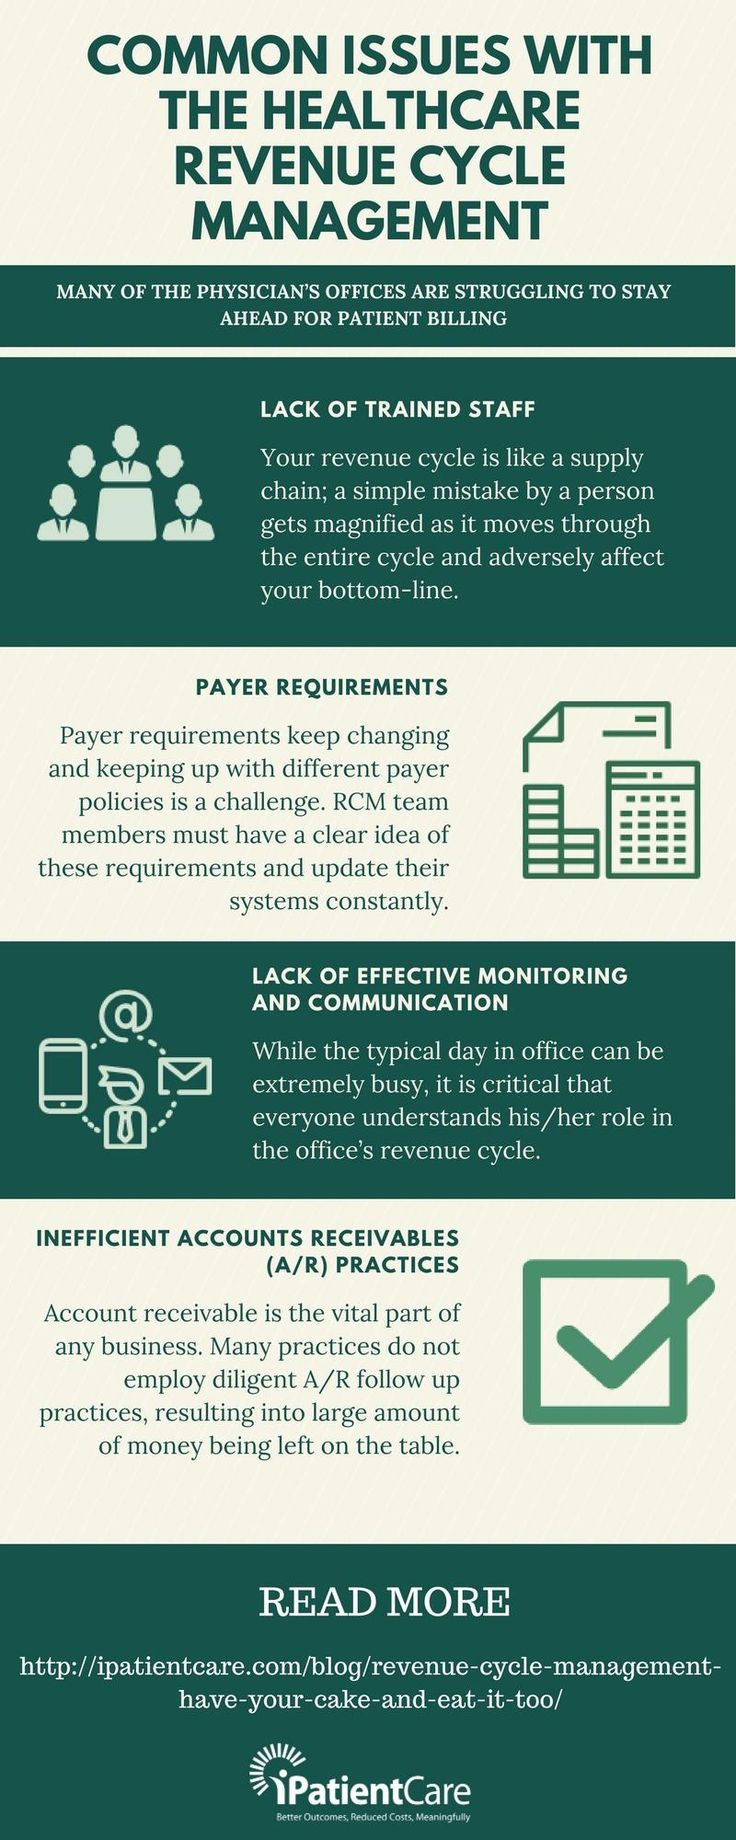 Common Issues with the Healthcare Revenue Cycle Management